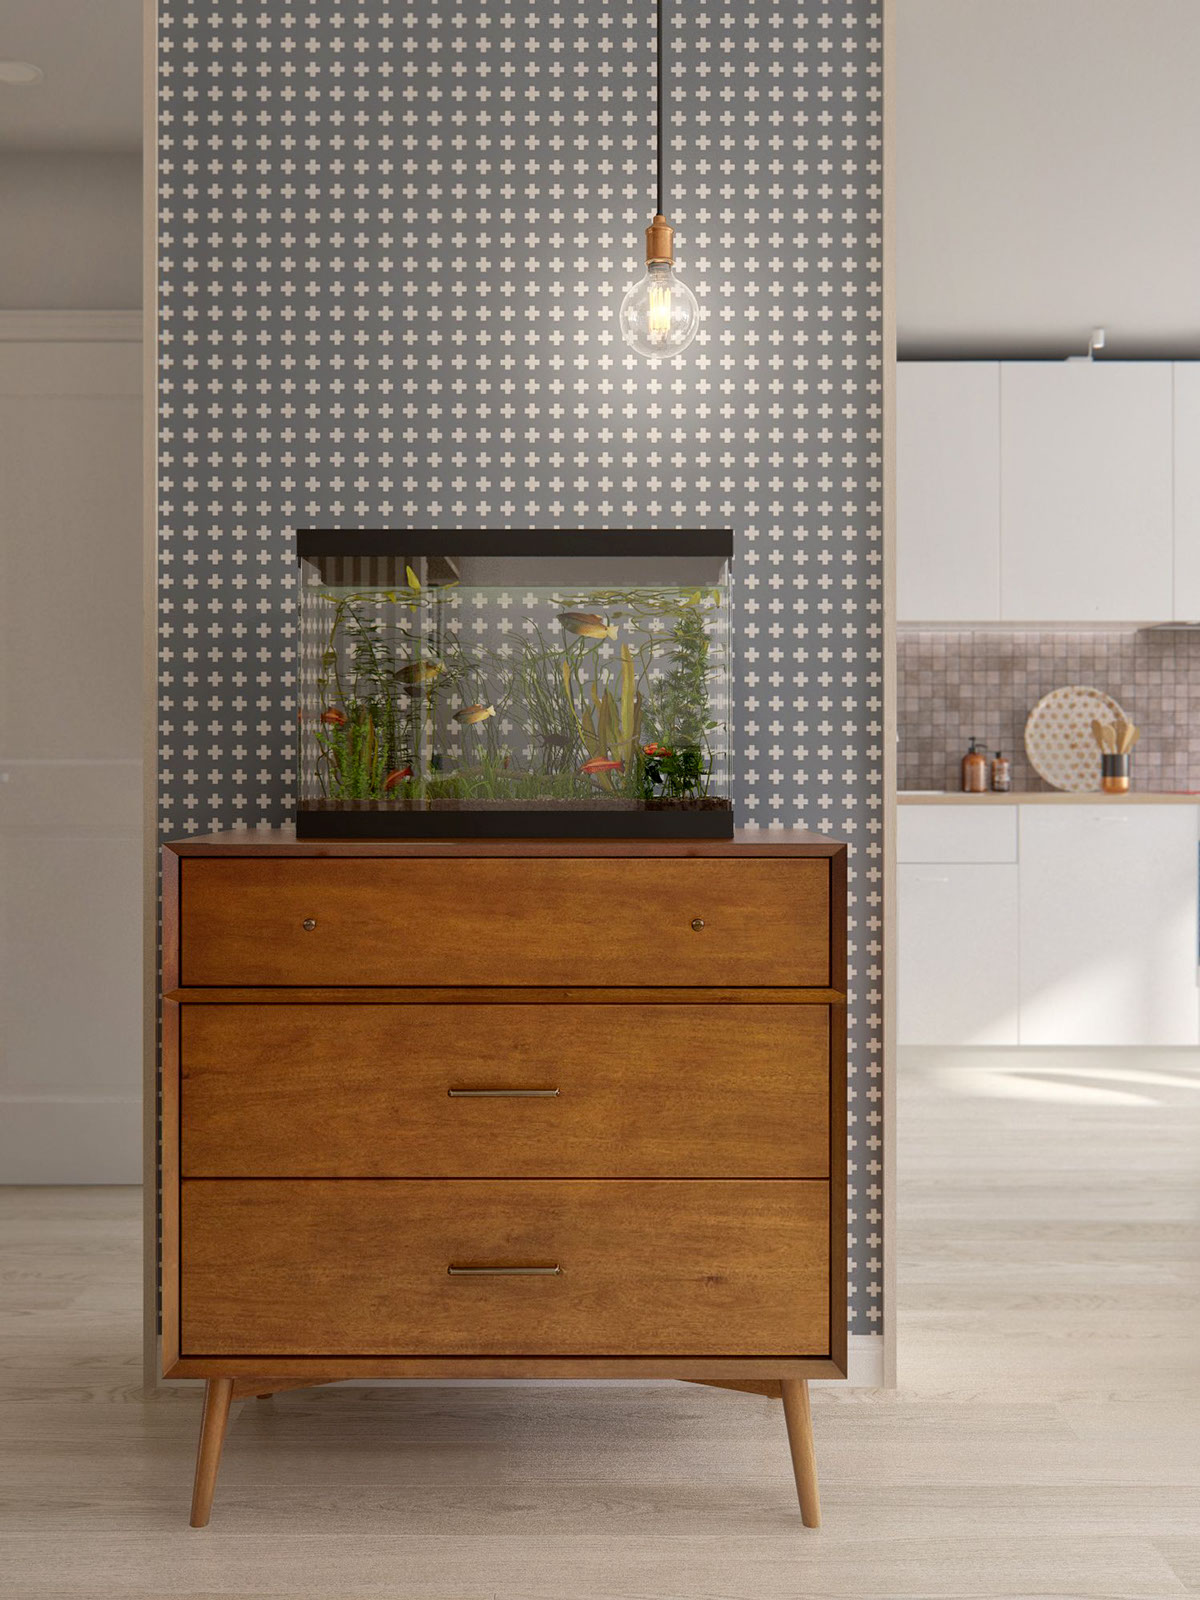 Patterned Wallpaper - A midcentury inspired apartment with scandinavian tendencies